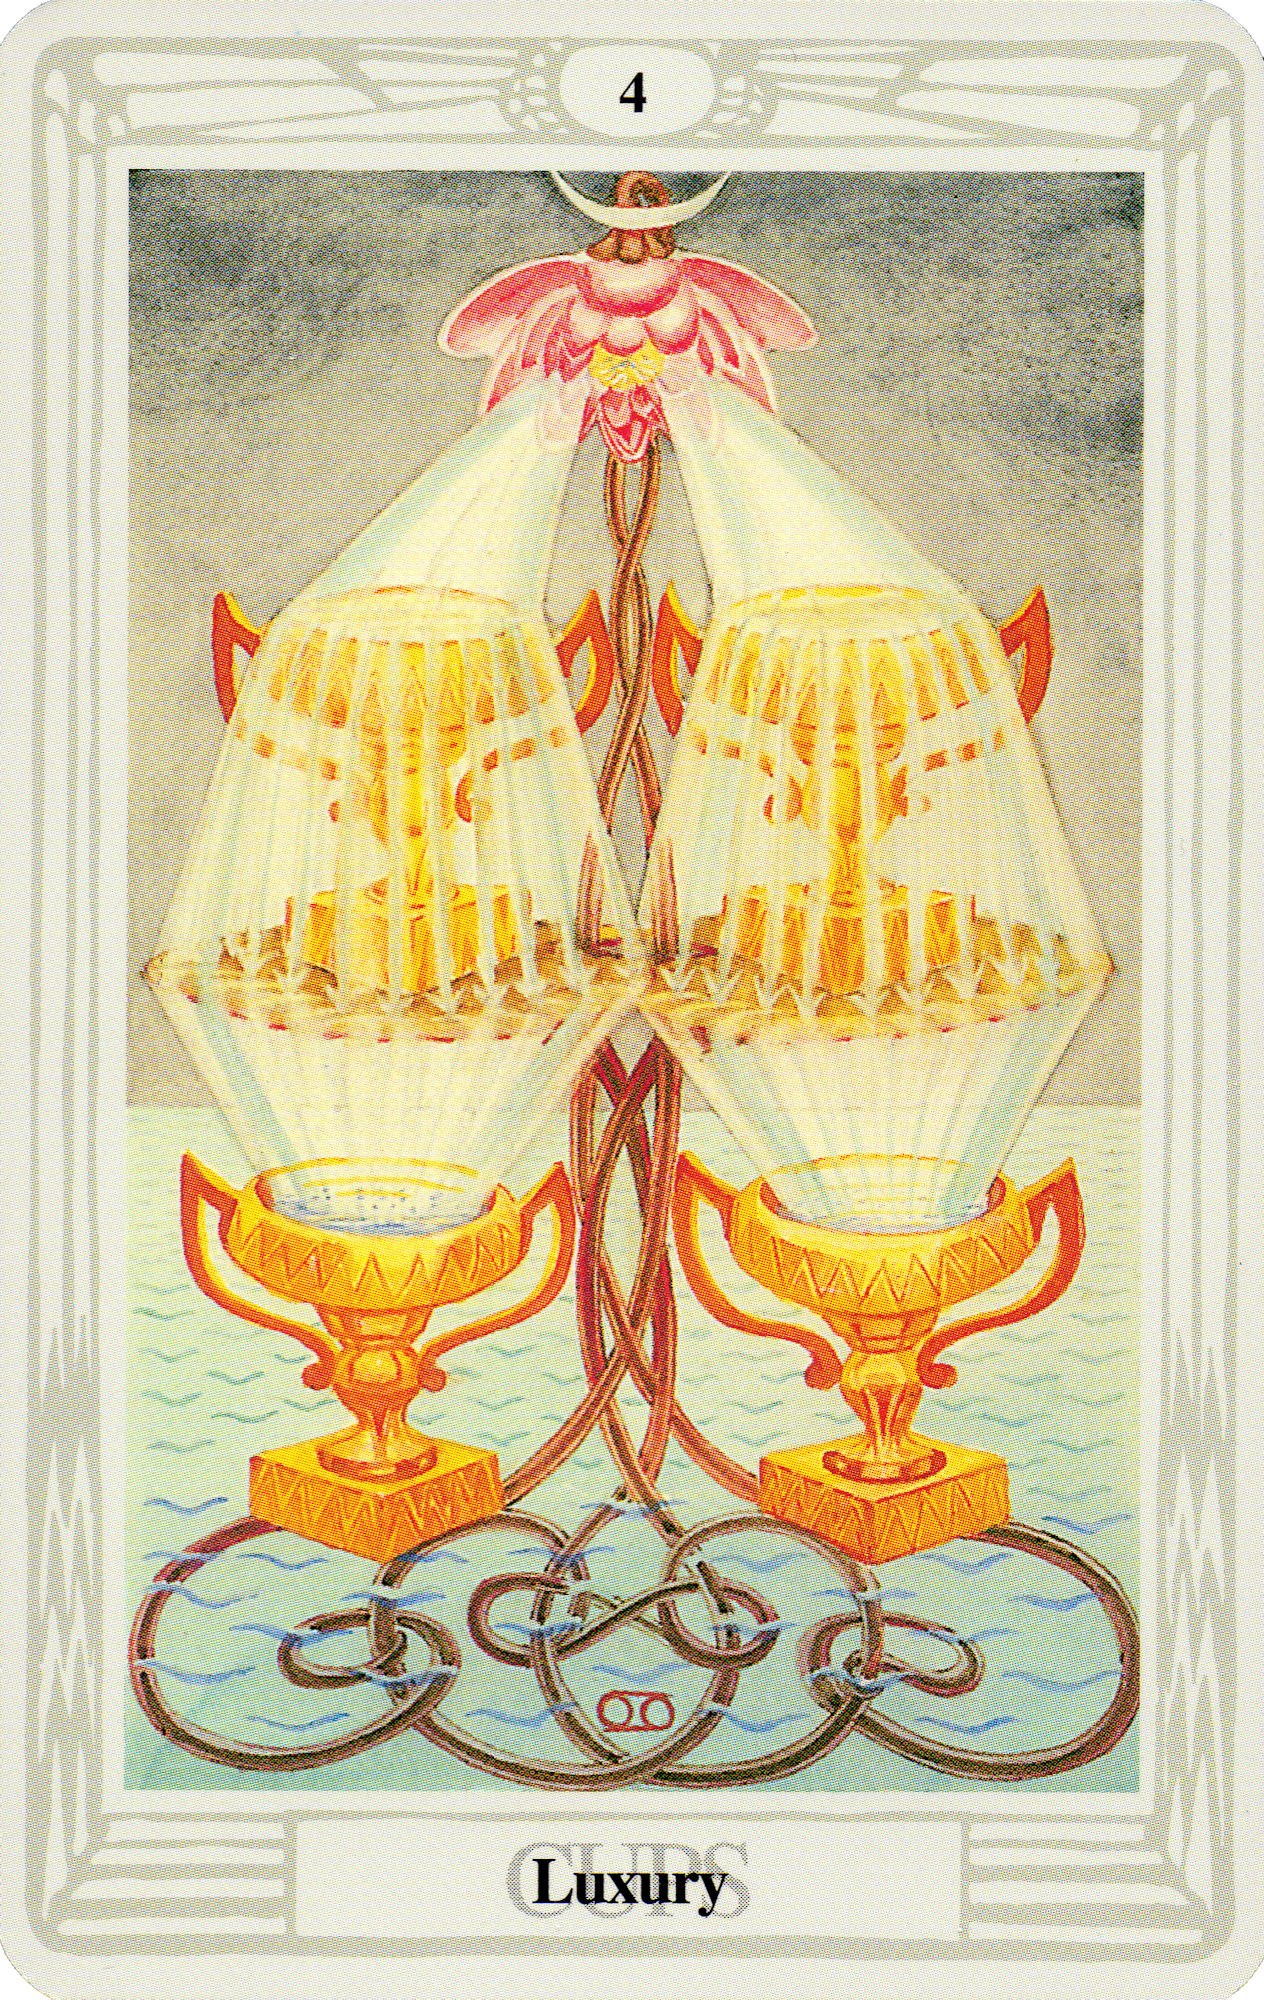 Belle Constantinne - Four of Cups - The Thoth Deck by